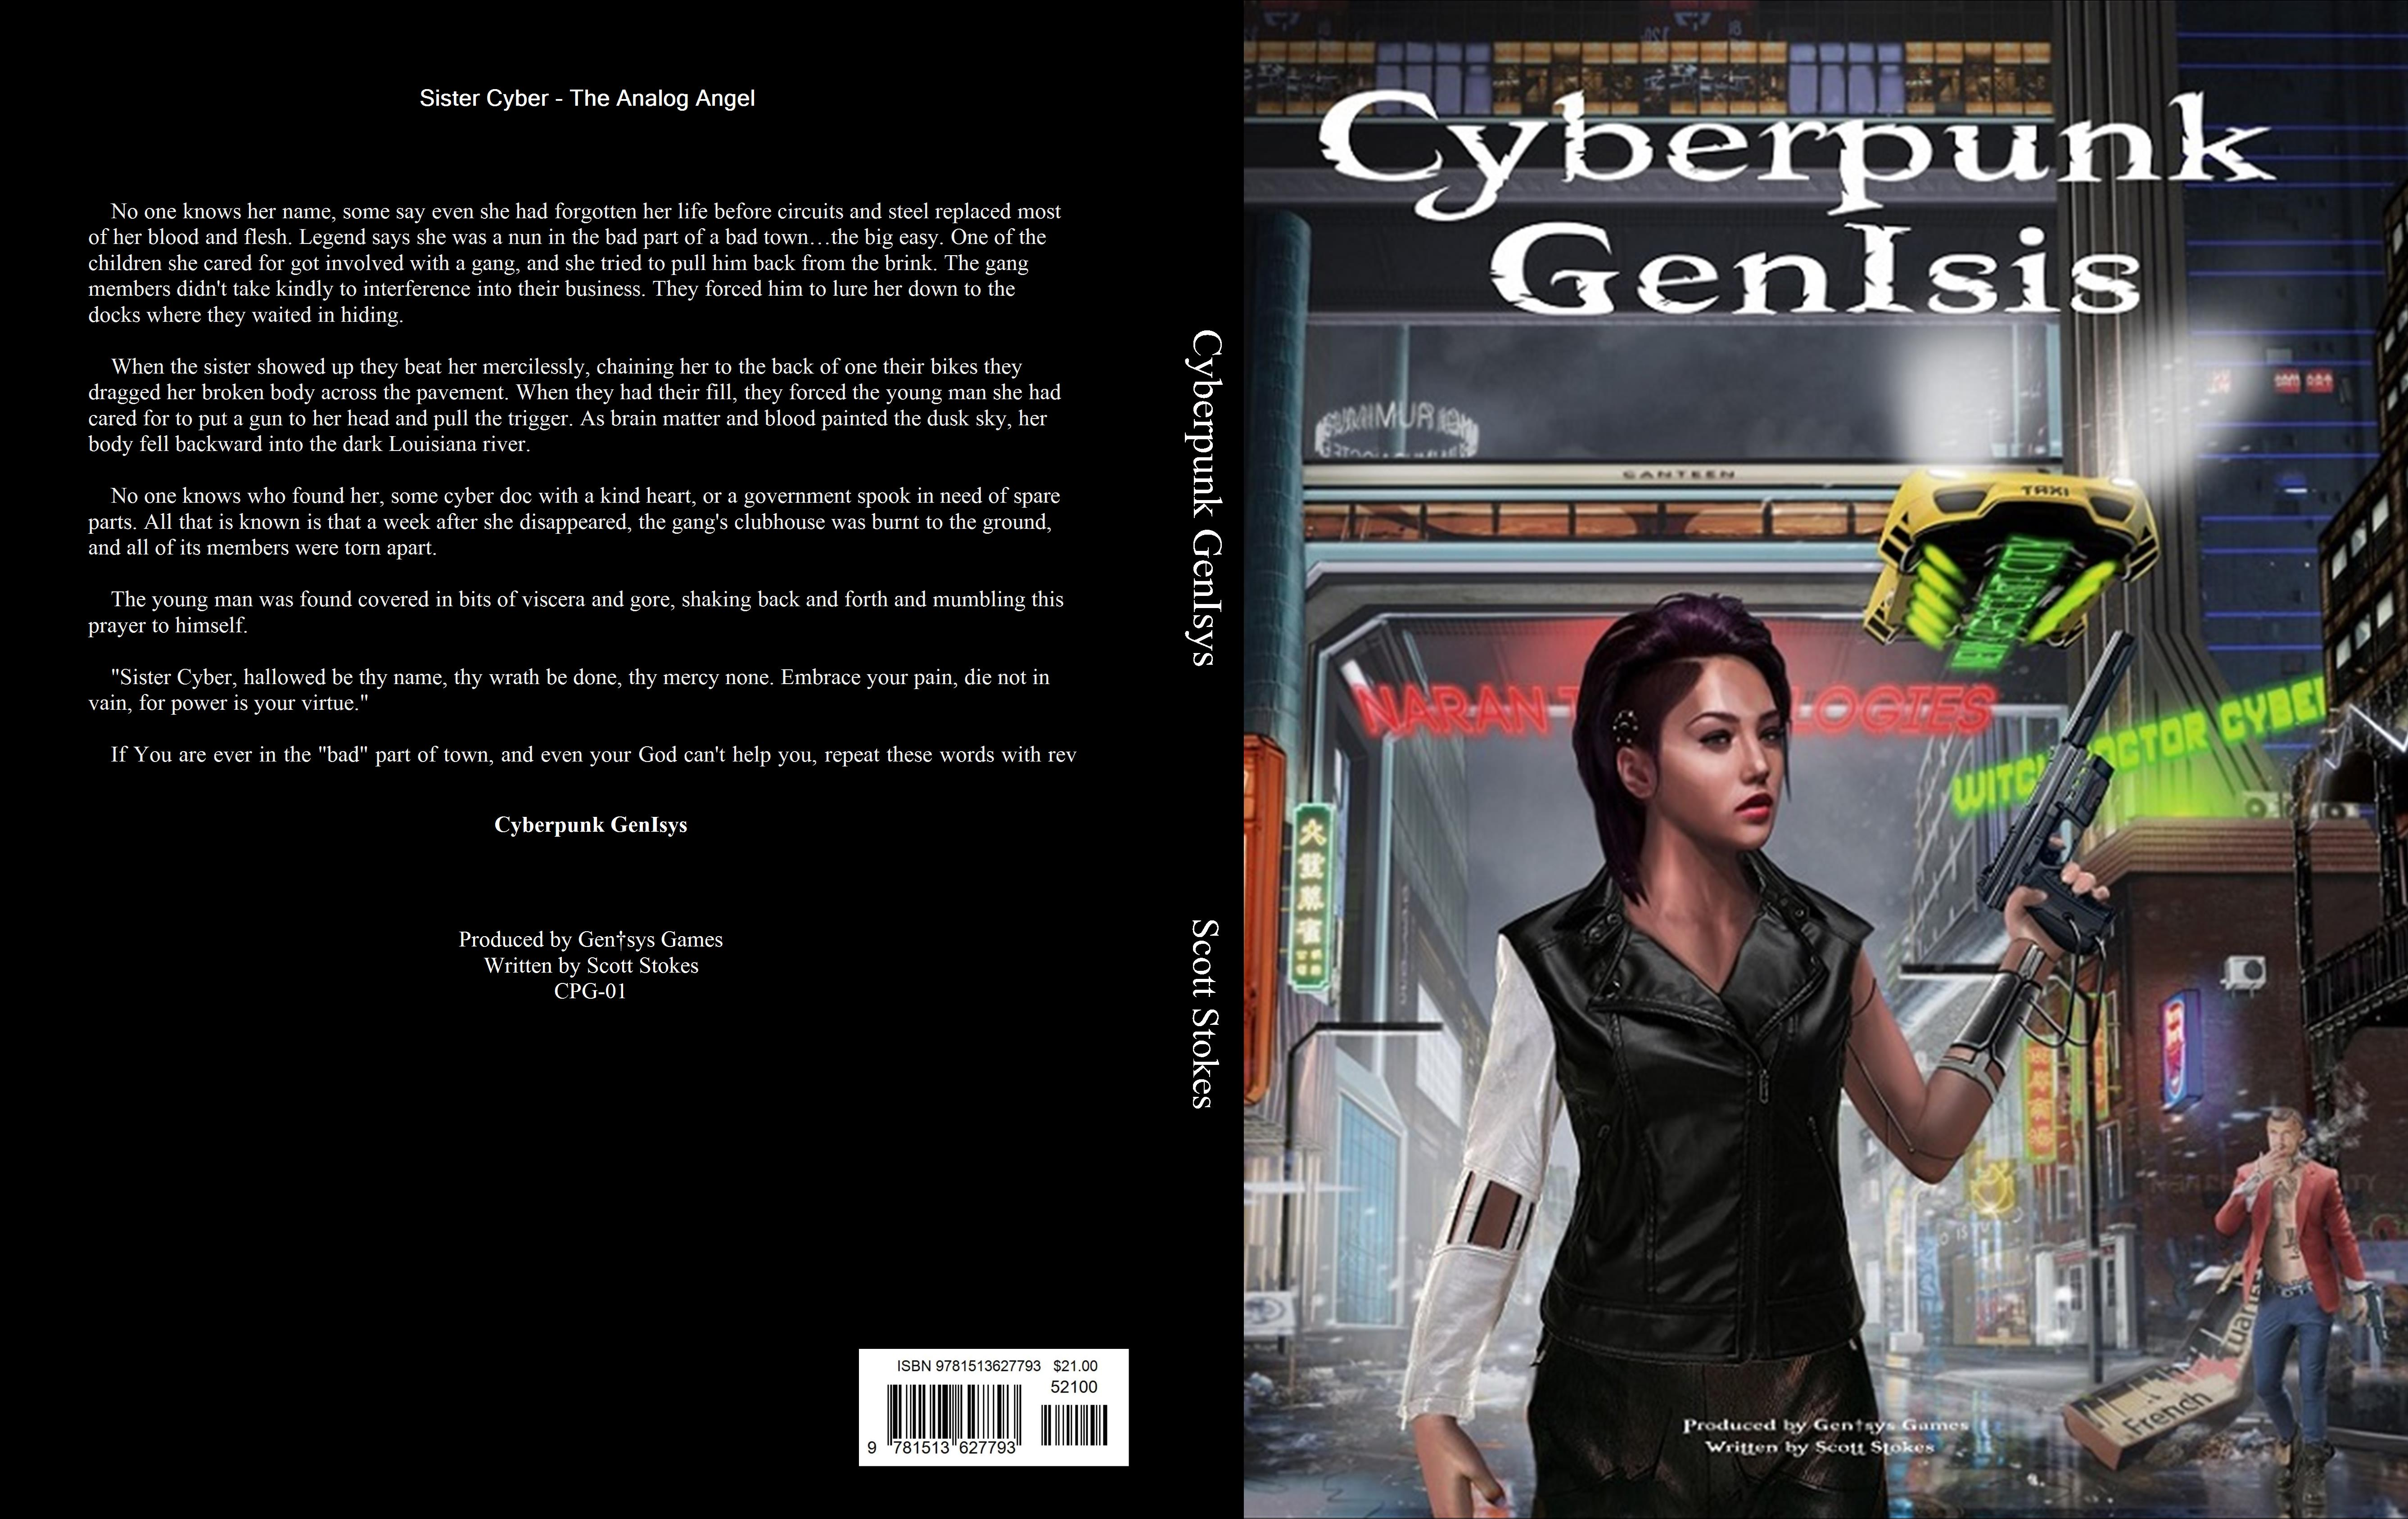 Cyberpunk GenIsys cover image